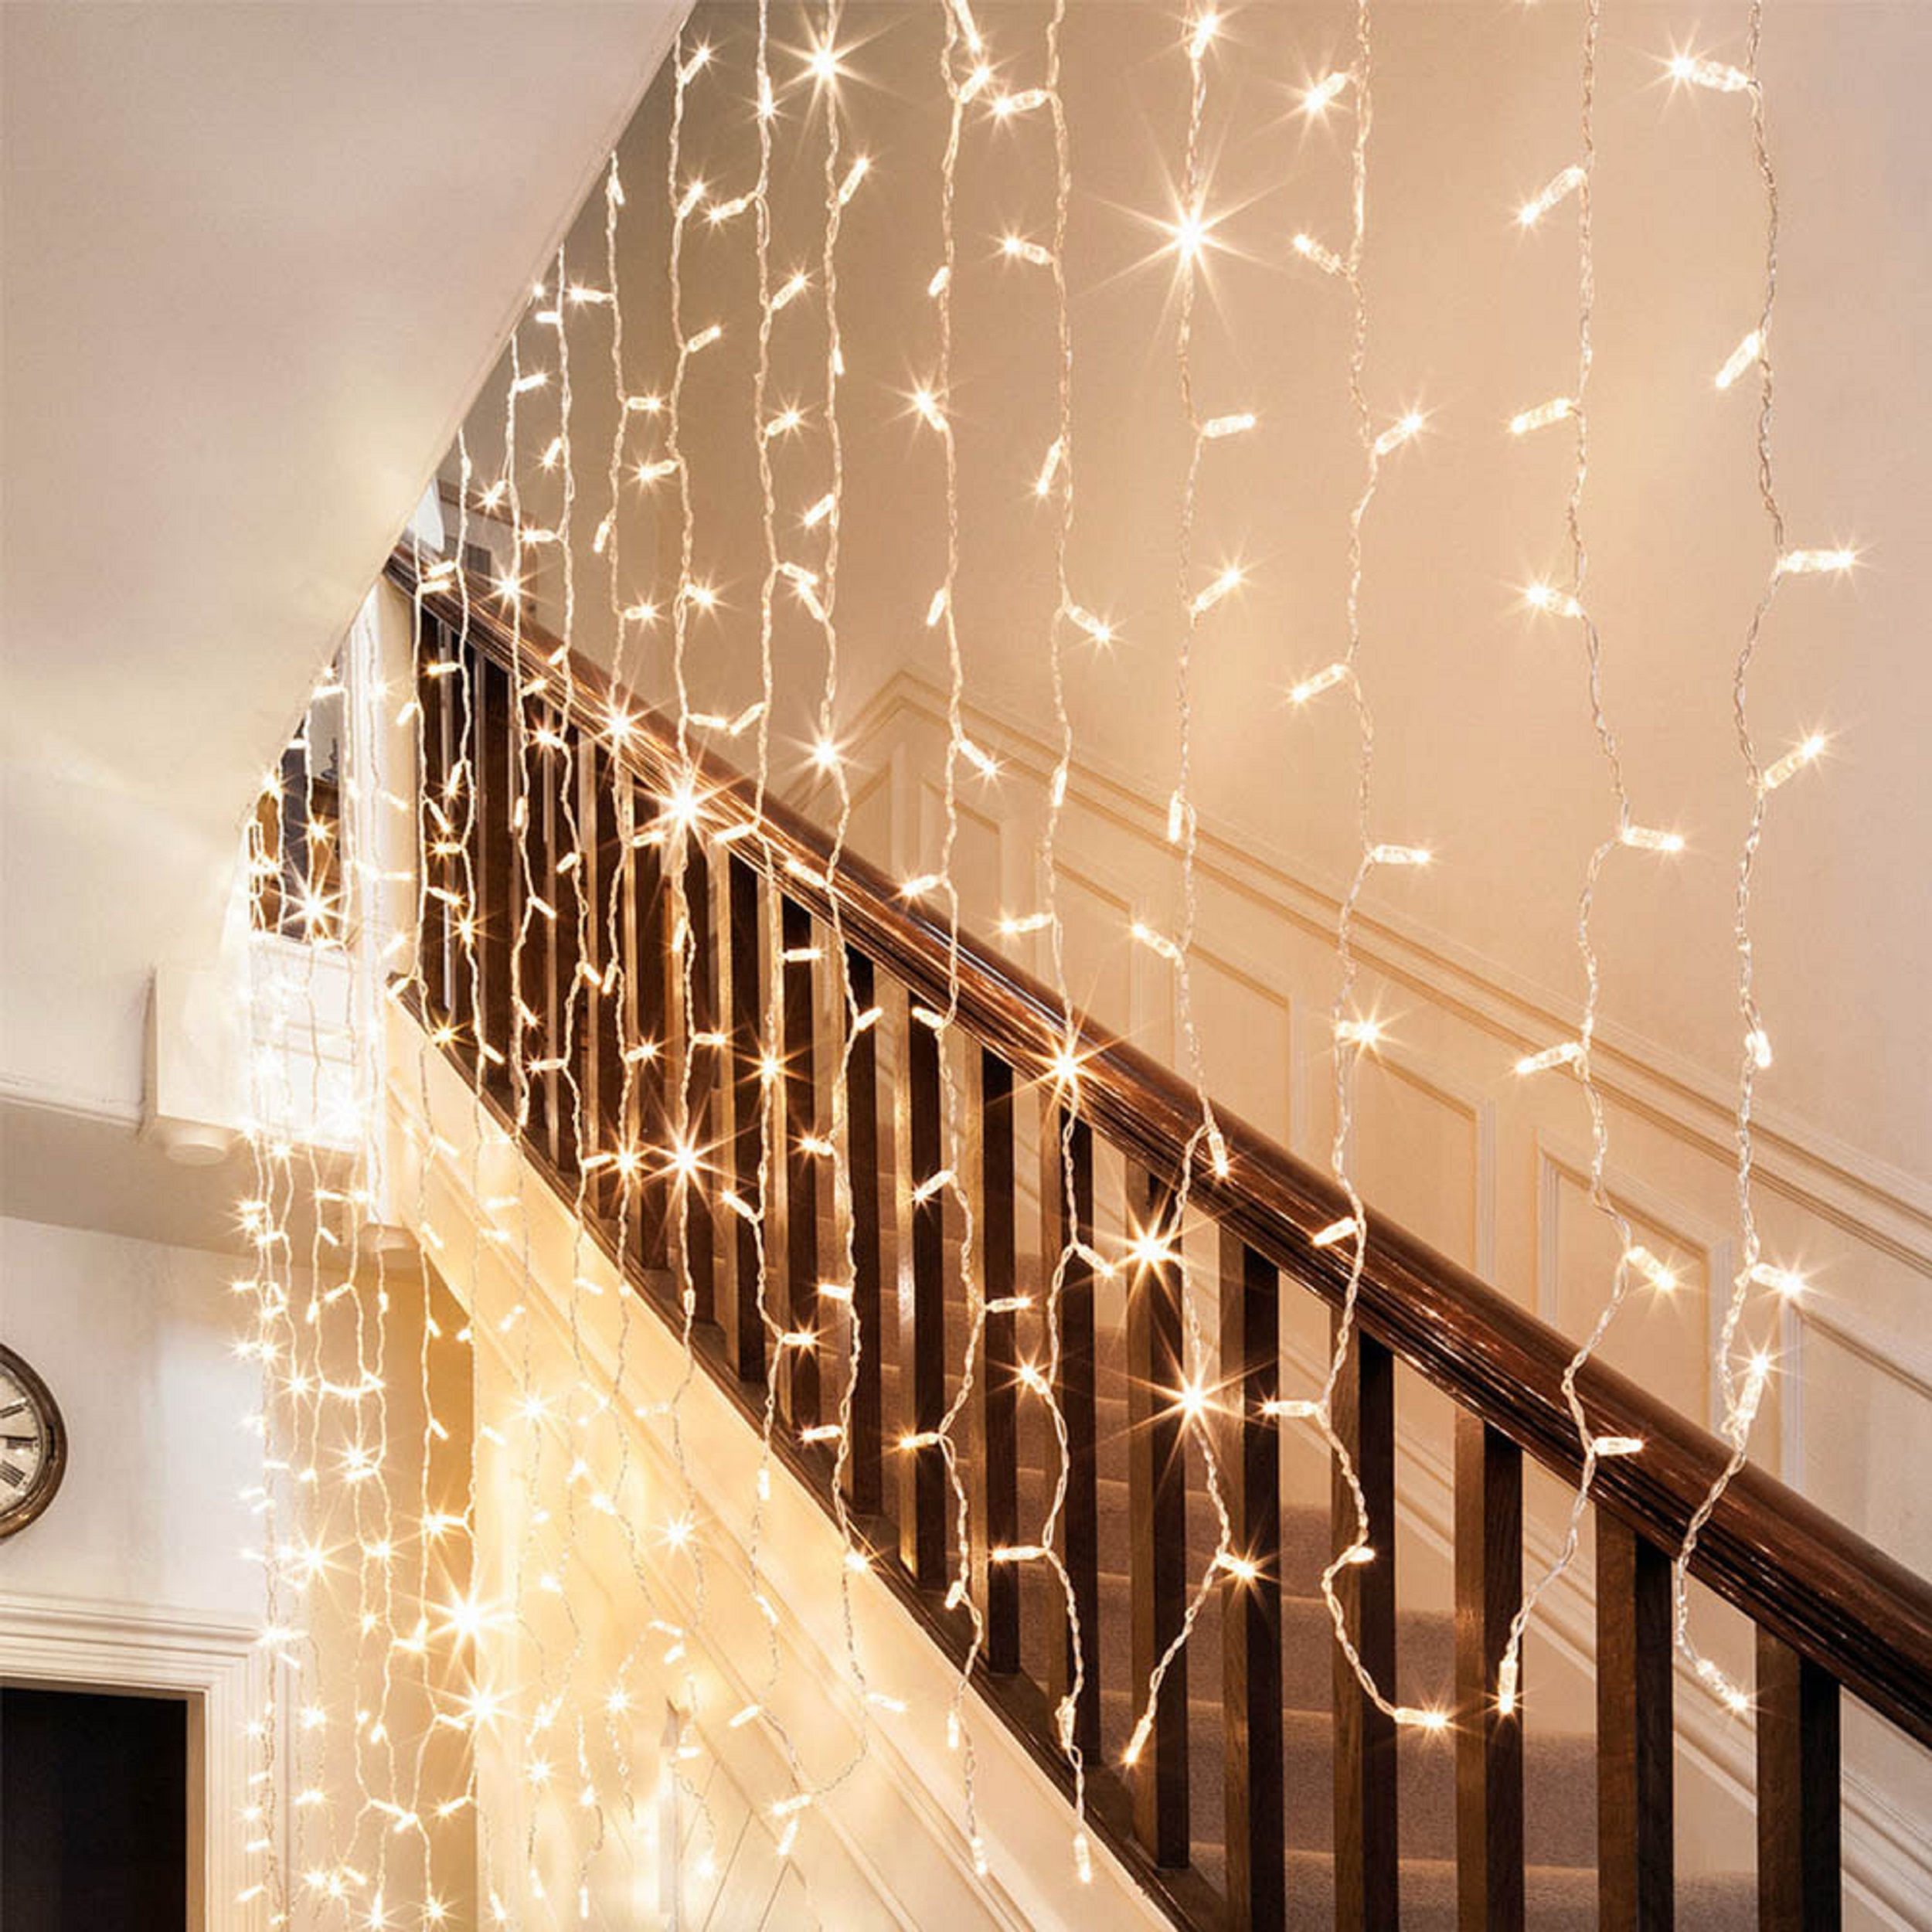 TORCHSTAR 9.8ft x 9.8ft LED Curtain Lights, Starry Christmas String Light, Indoor Decoration for Festival, Wedding, Party, Living Room, Bedroom, Soft White